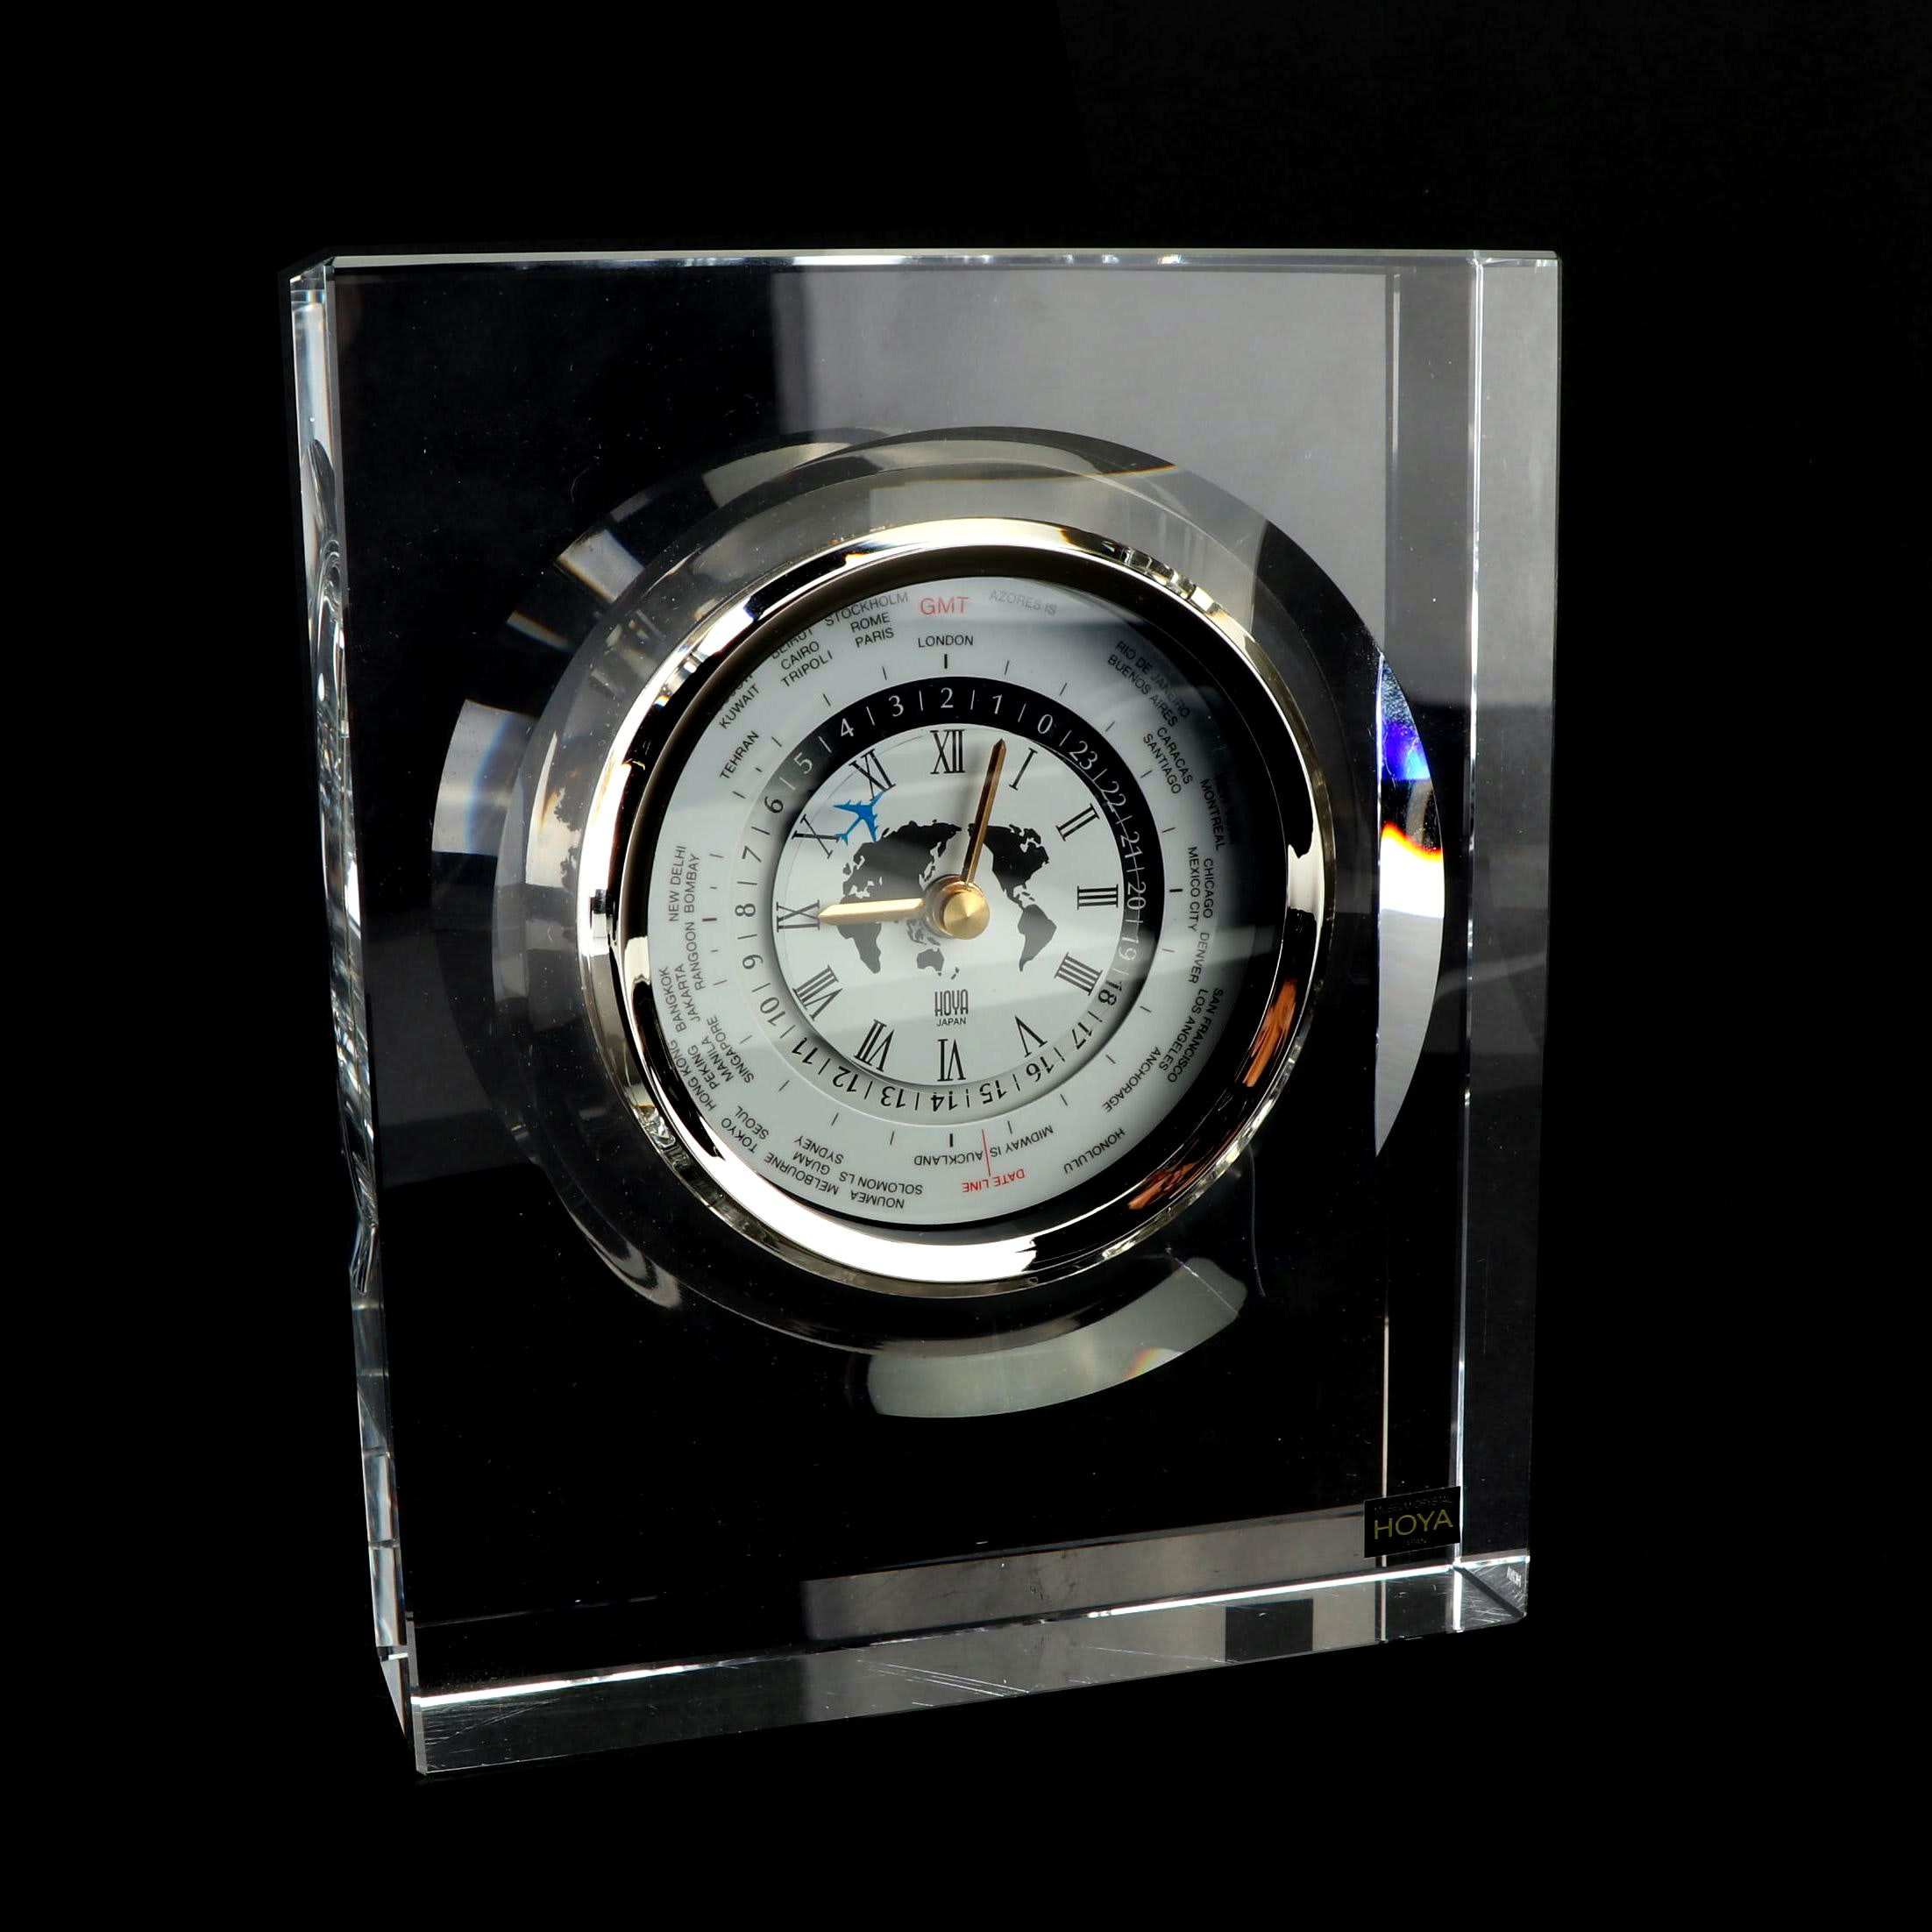 HOYA Crystal World Clock